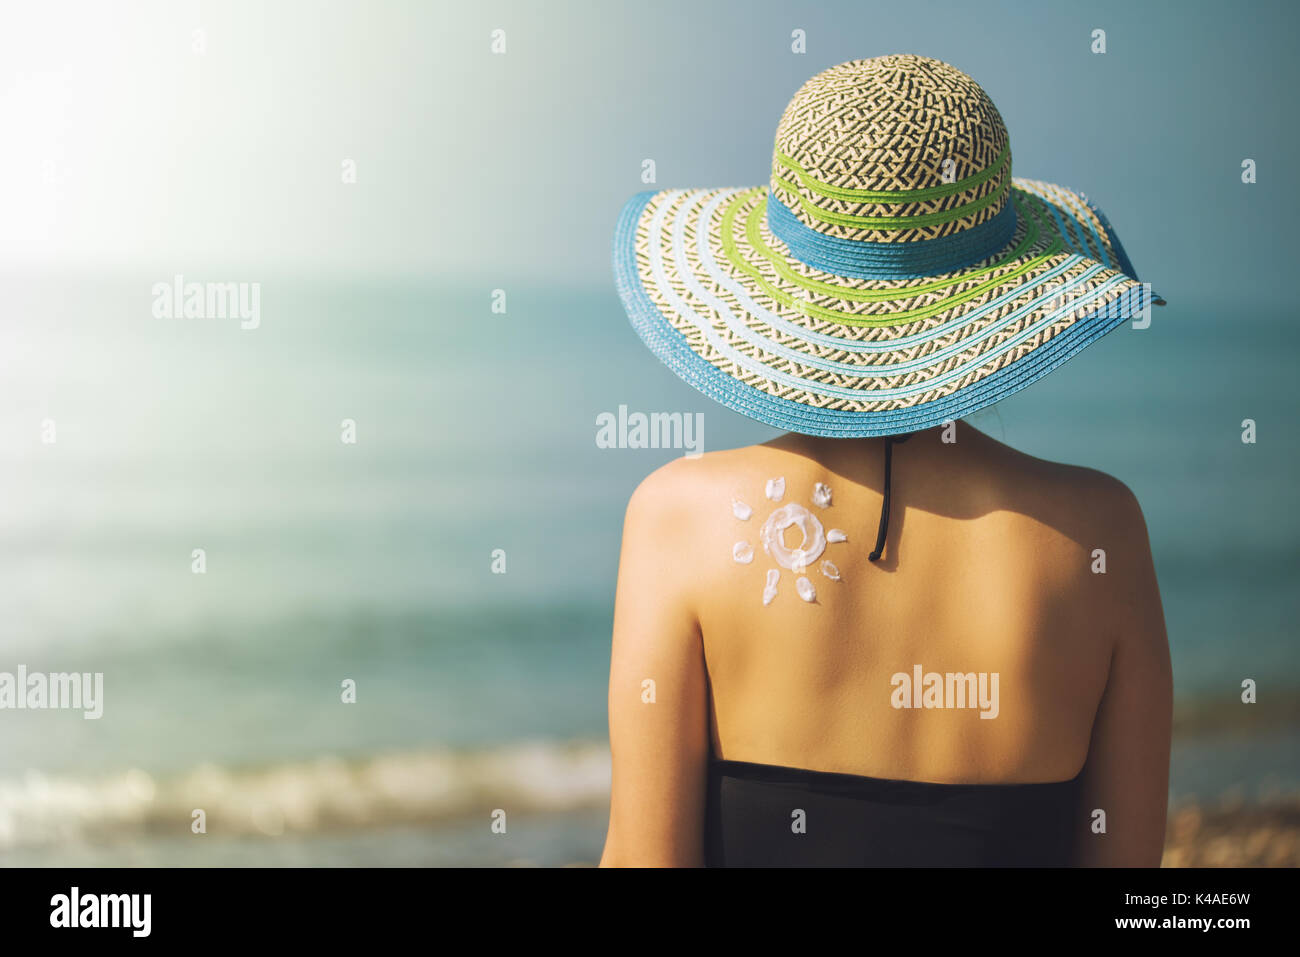 Young woman with sun shape on the shoulder holding sun cream bottle on the beach - Stock Image